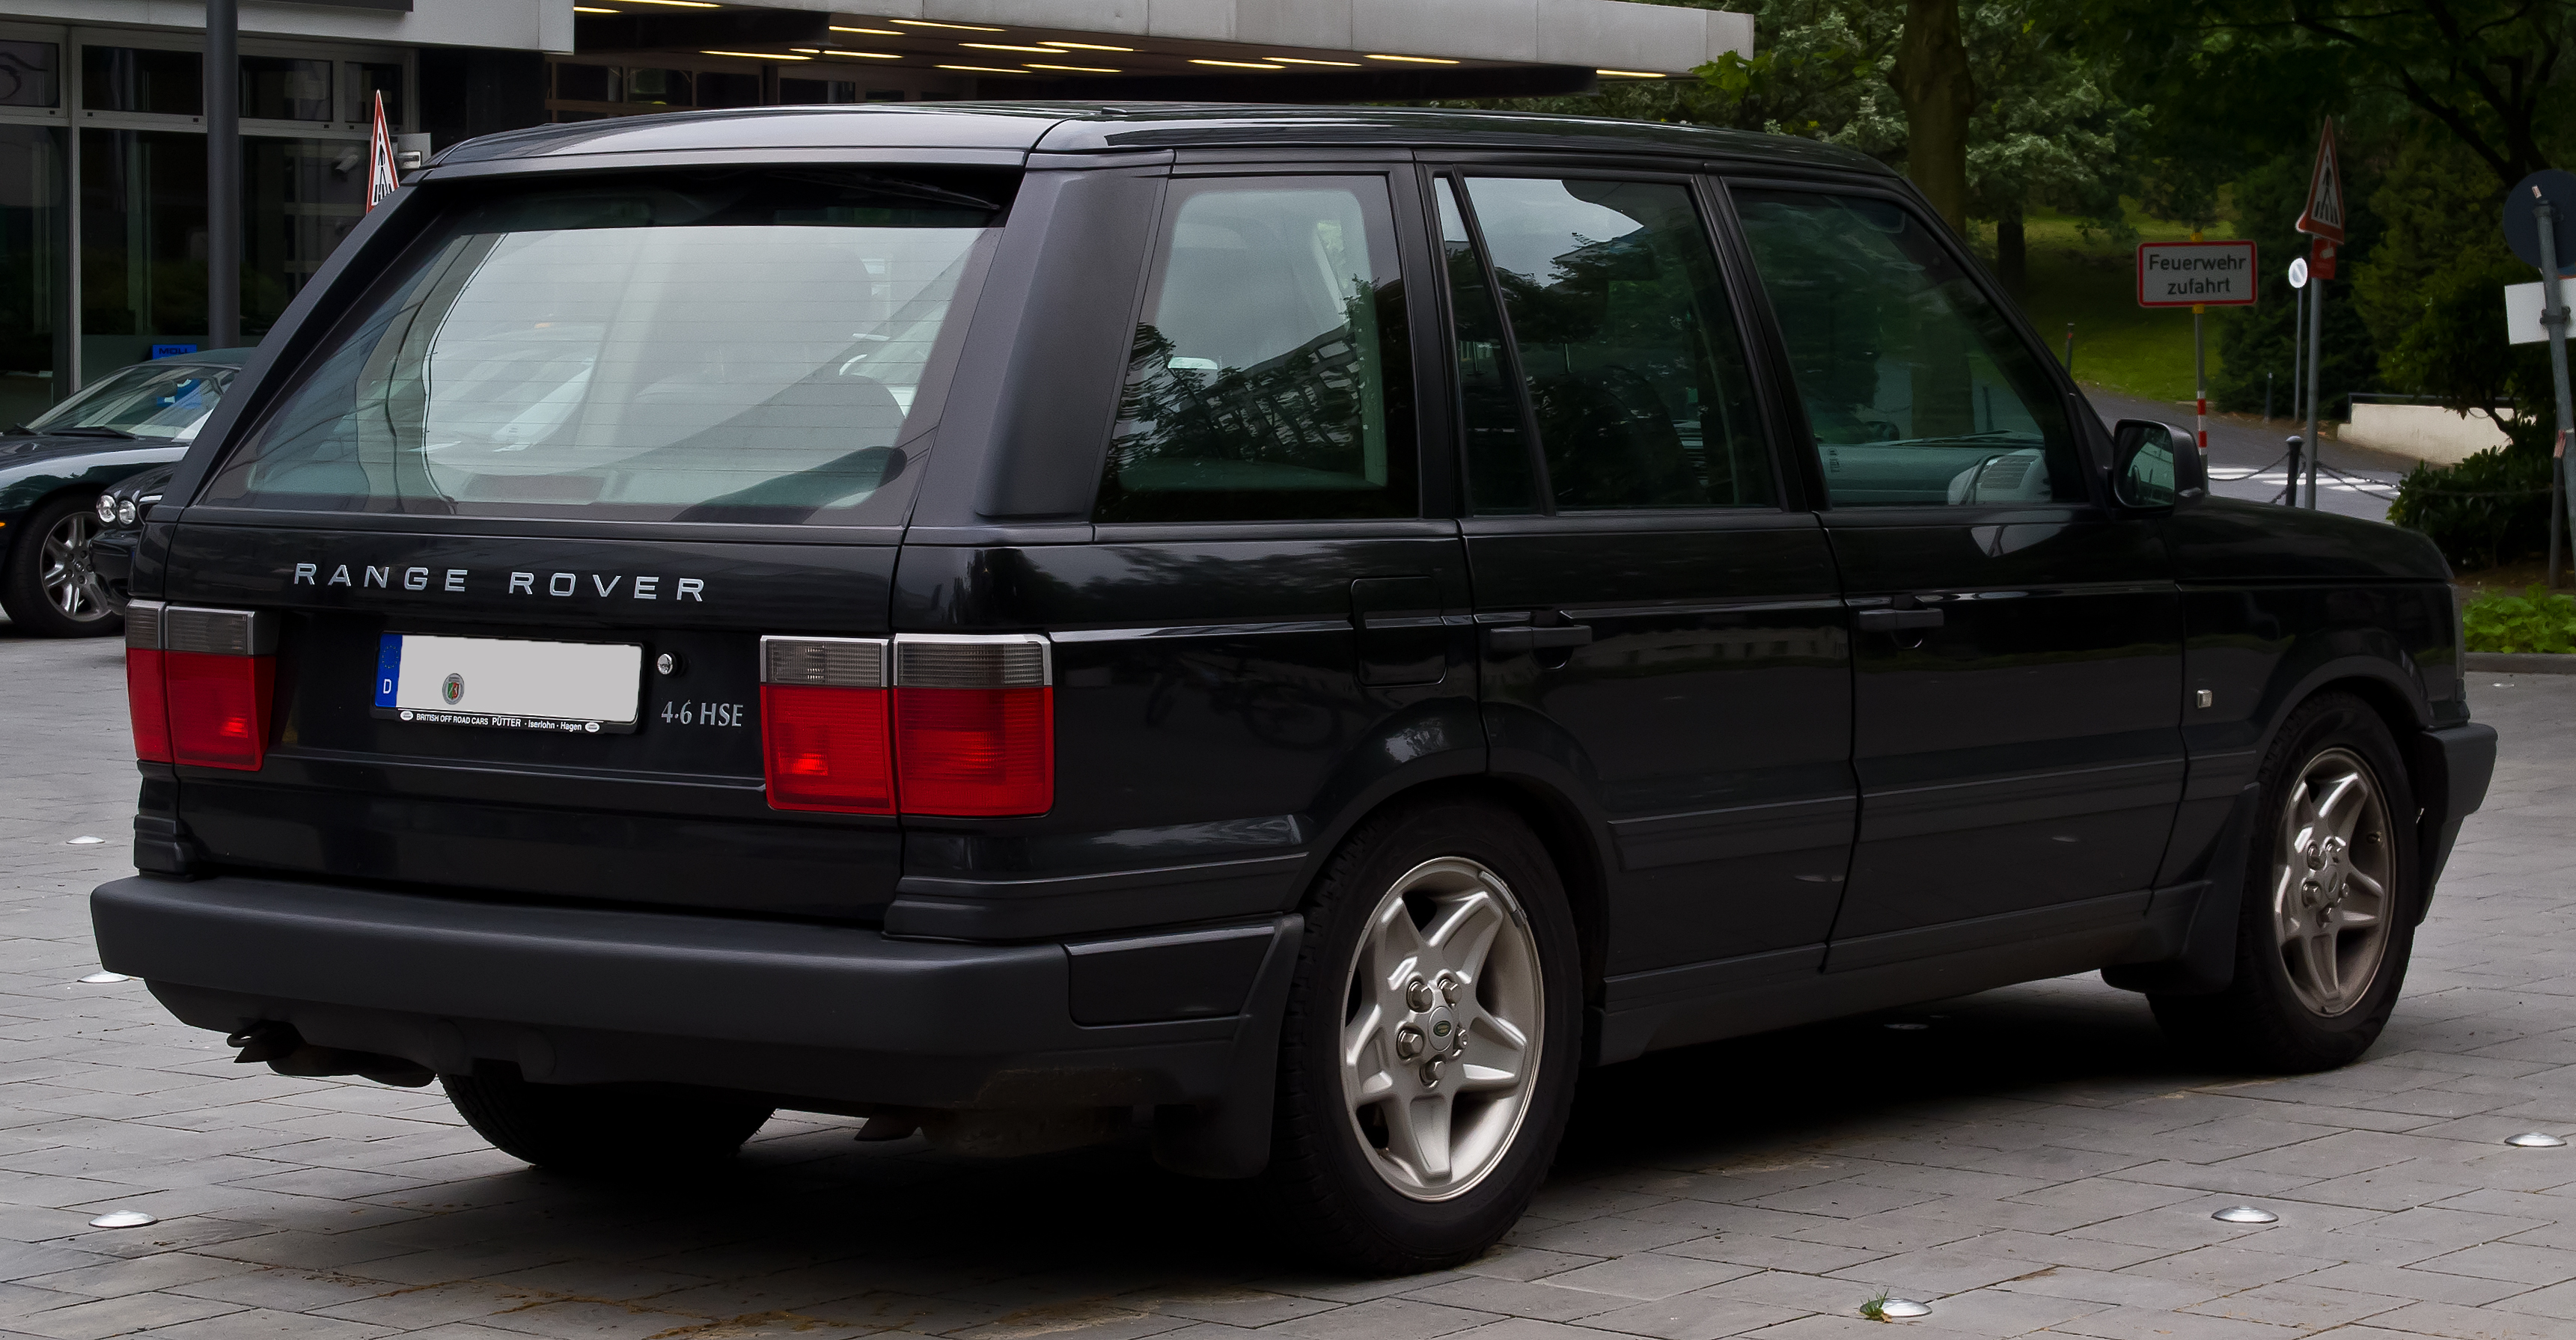 file range rover 4 6 hse ii heckansicht 12 juli 2014 d wikimedia commons. Black Bedroom Furniture Sets. Home Design Ideas